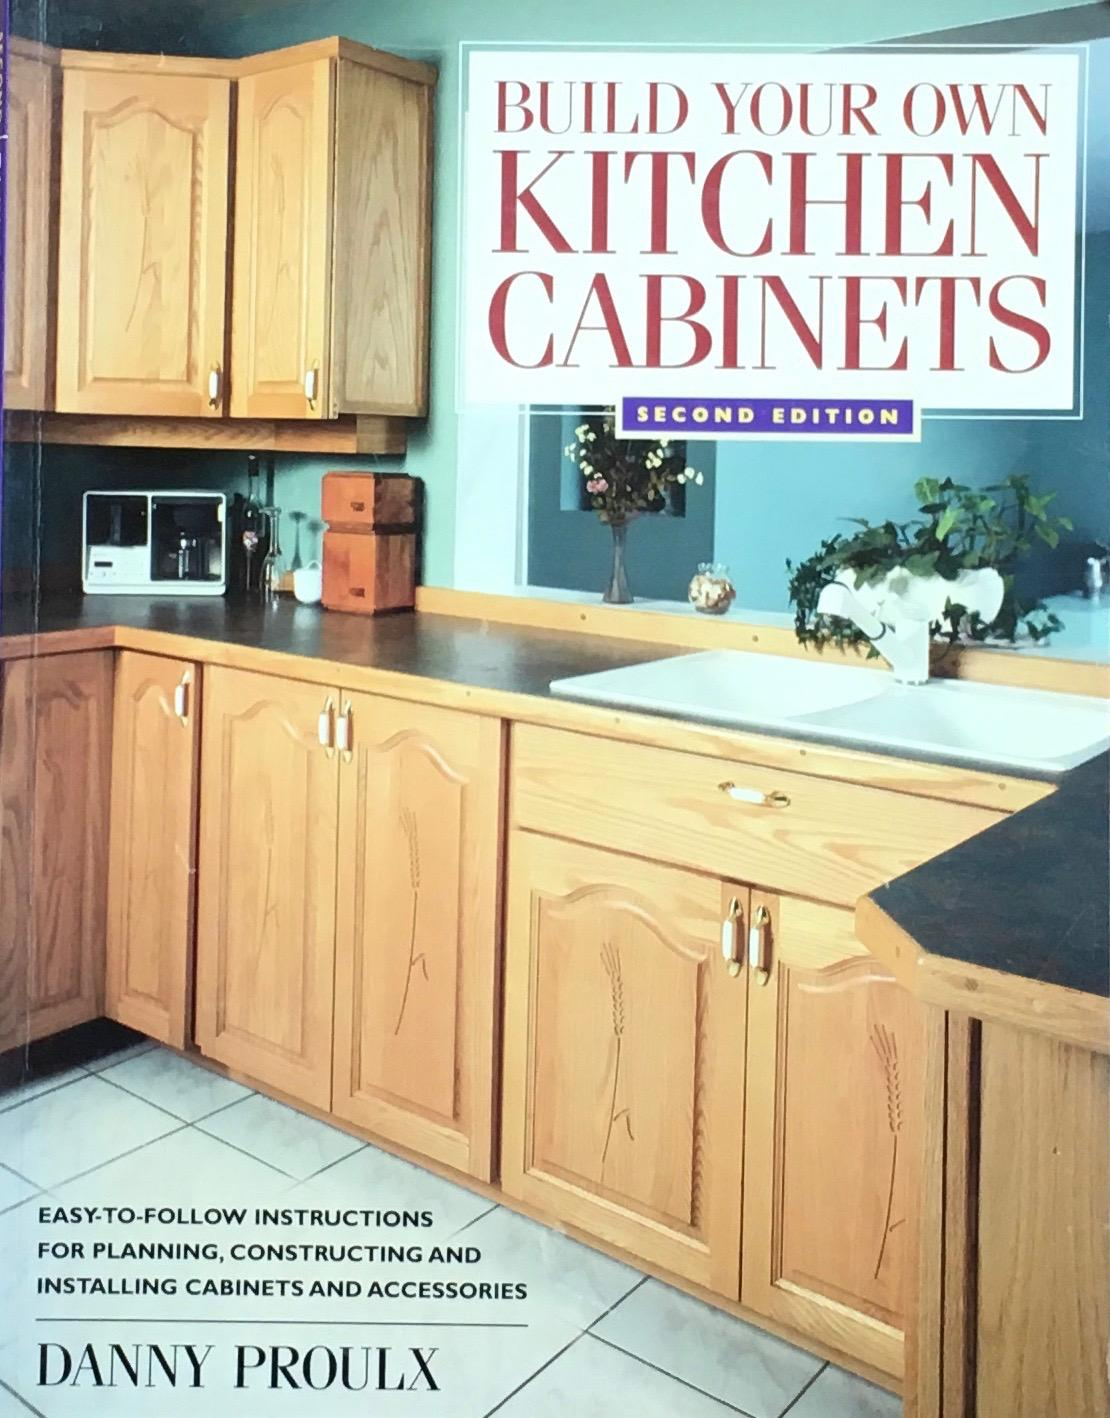 Build Your Own Kitchen Cabinets Second Edition By Proulx Danny Very Good Paperback 2005 Later Printing The Glass Key